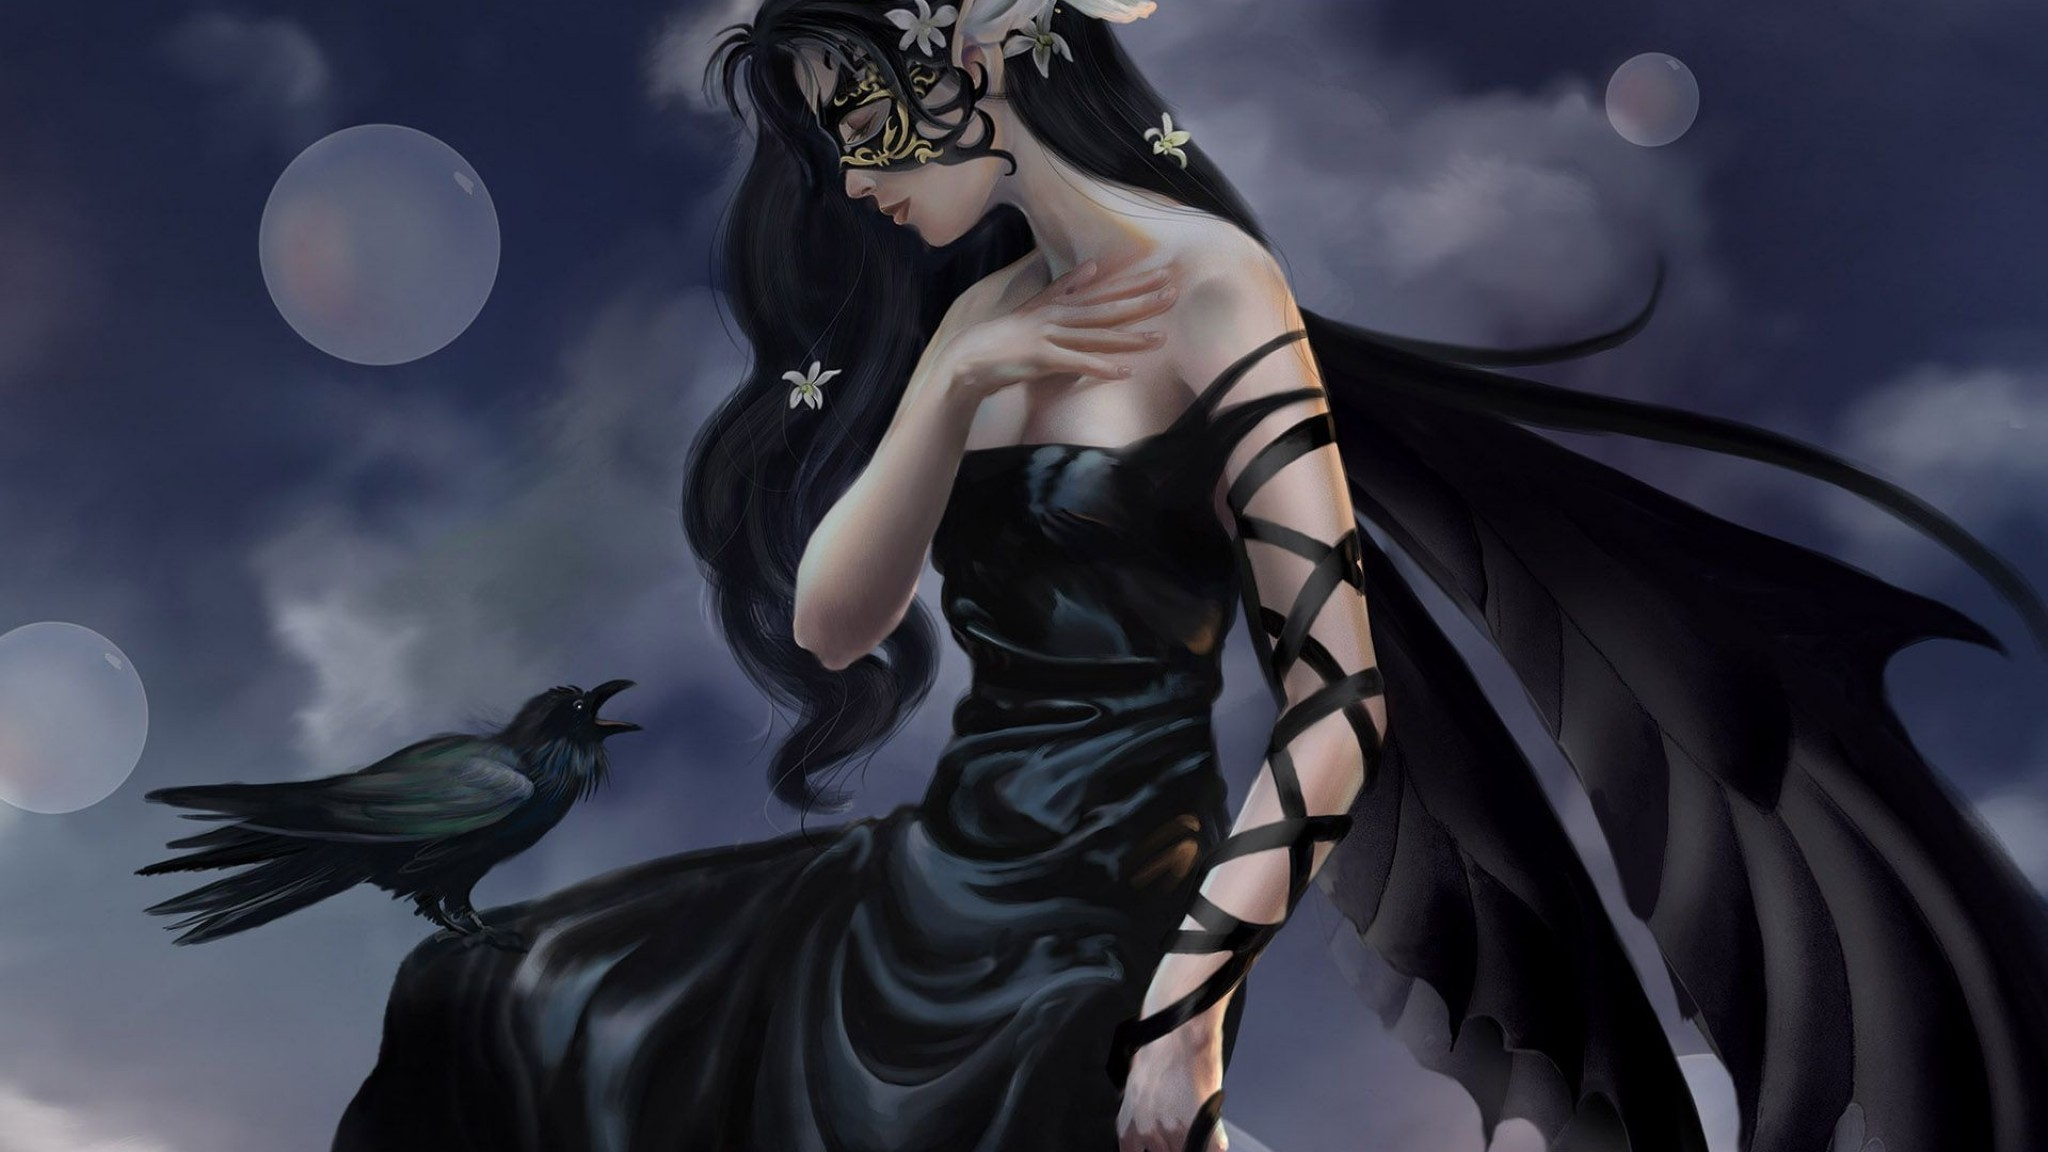 Dark fairy wallpapers 56 images 2048x1152 dark fairy wallpapers wallpaper dark fairy wallpapers hd voltagebd Image collections